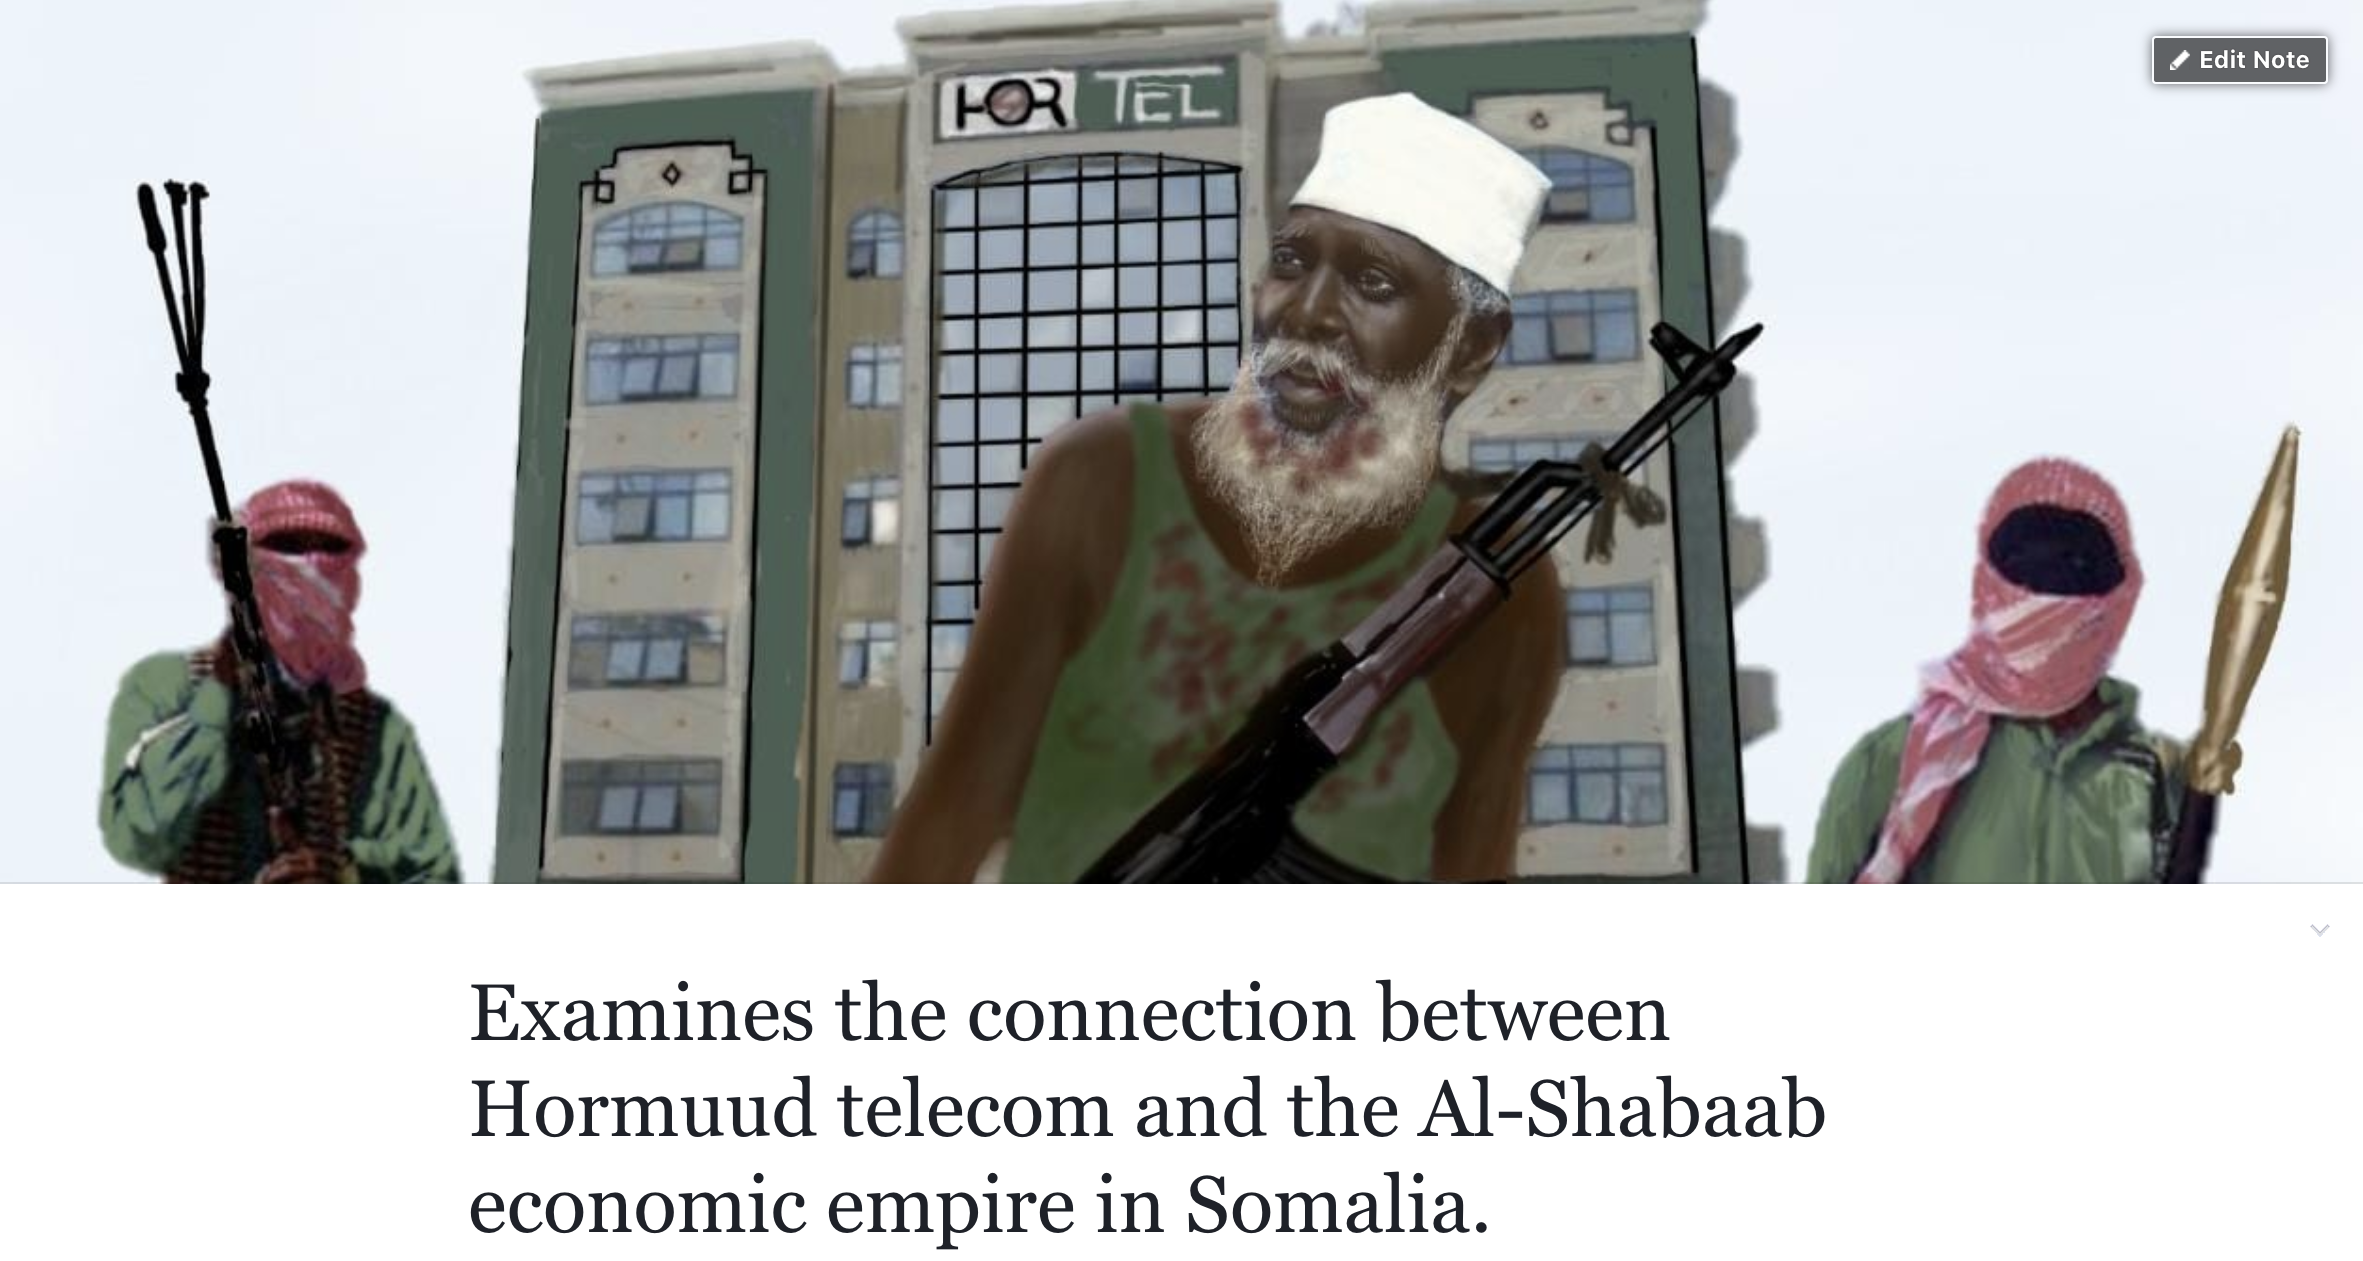 Connection between Hormuud telecom and the Al-Shabaab economic empire in Somalia.